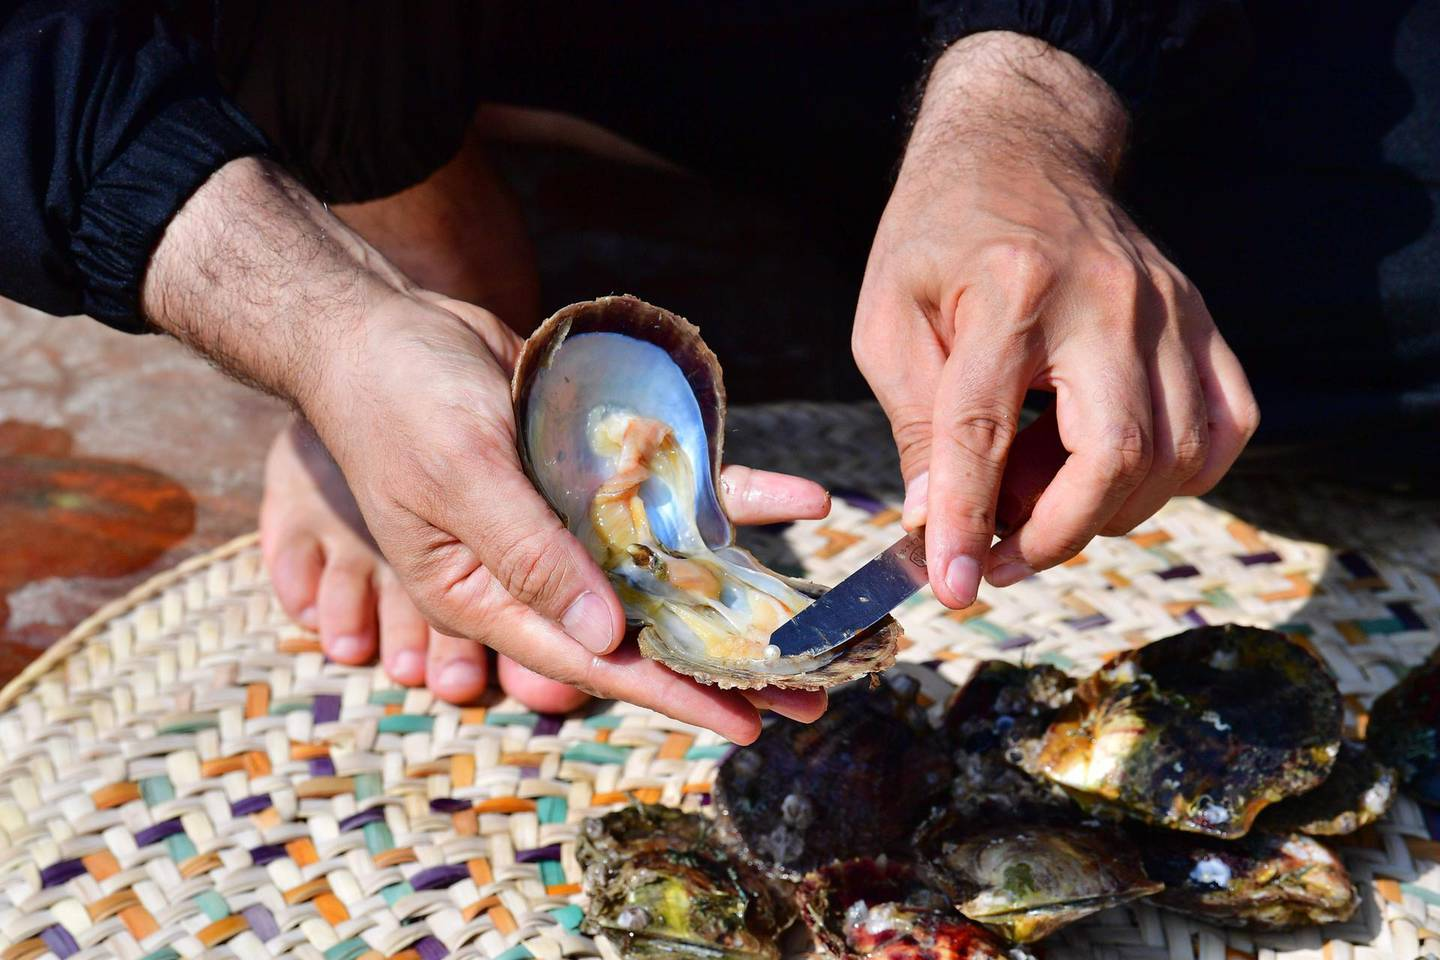 Emirati Abdullah al-Suwaidi displays a pearl found in a oyster at the Suwaidi's pearl farm, off the coast of al-Rams in the northern emirate of Ras al-Khaimah, on October 31, 2019. Suwaidi's project, one of a handful of operations in the United Arab Emirates, comes against a backdrop of increasing awareness of cultural traditions, such as falconry and camel racing, and efforts to promote and preserve them. Last month, Abu Dhabi authorities announced that the world's oldest natural pearl, found just off the capital at Marawah Island, would be displayed for the first time at the Louvre Abu Dhabi, the local outpost of the famous Paris museum.  / AFP / GIUSEPPE CACACE